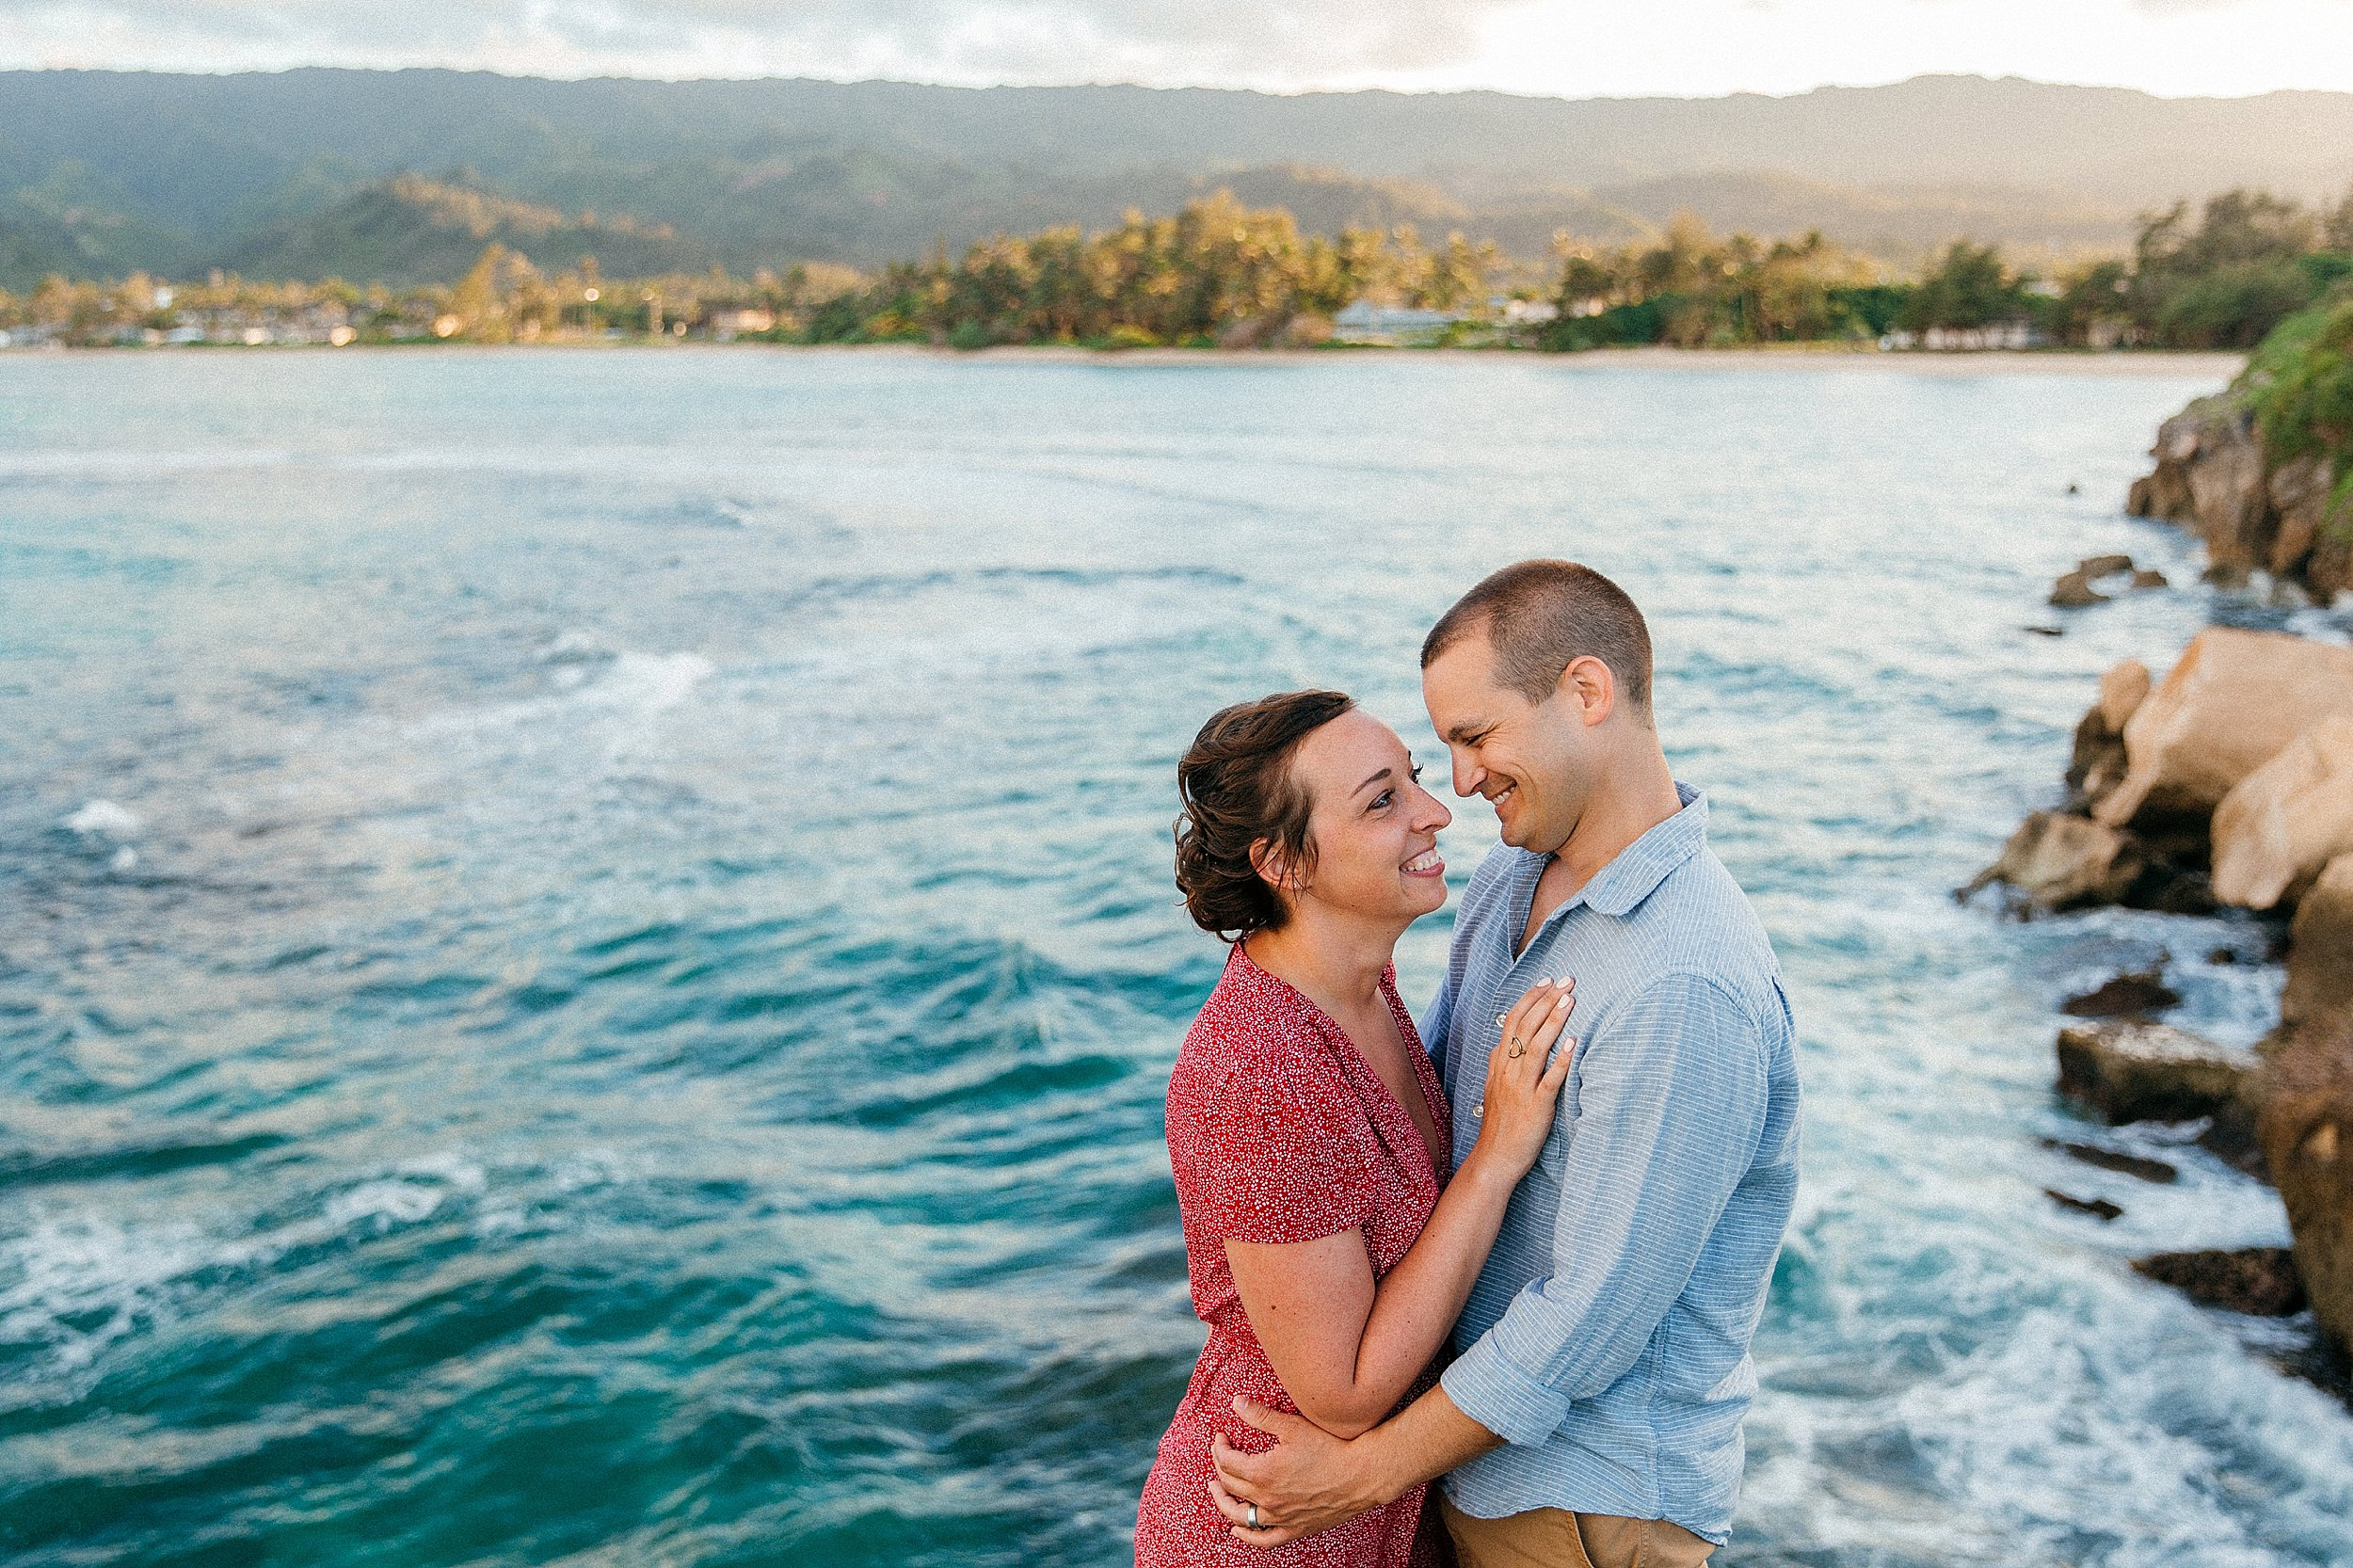 Kelsey & Scott together after 5 years married; they adventured around Oahu and had some vacation photos taken at Laie Point on the North Shore.